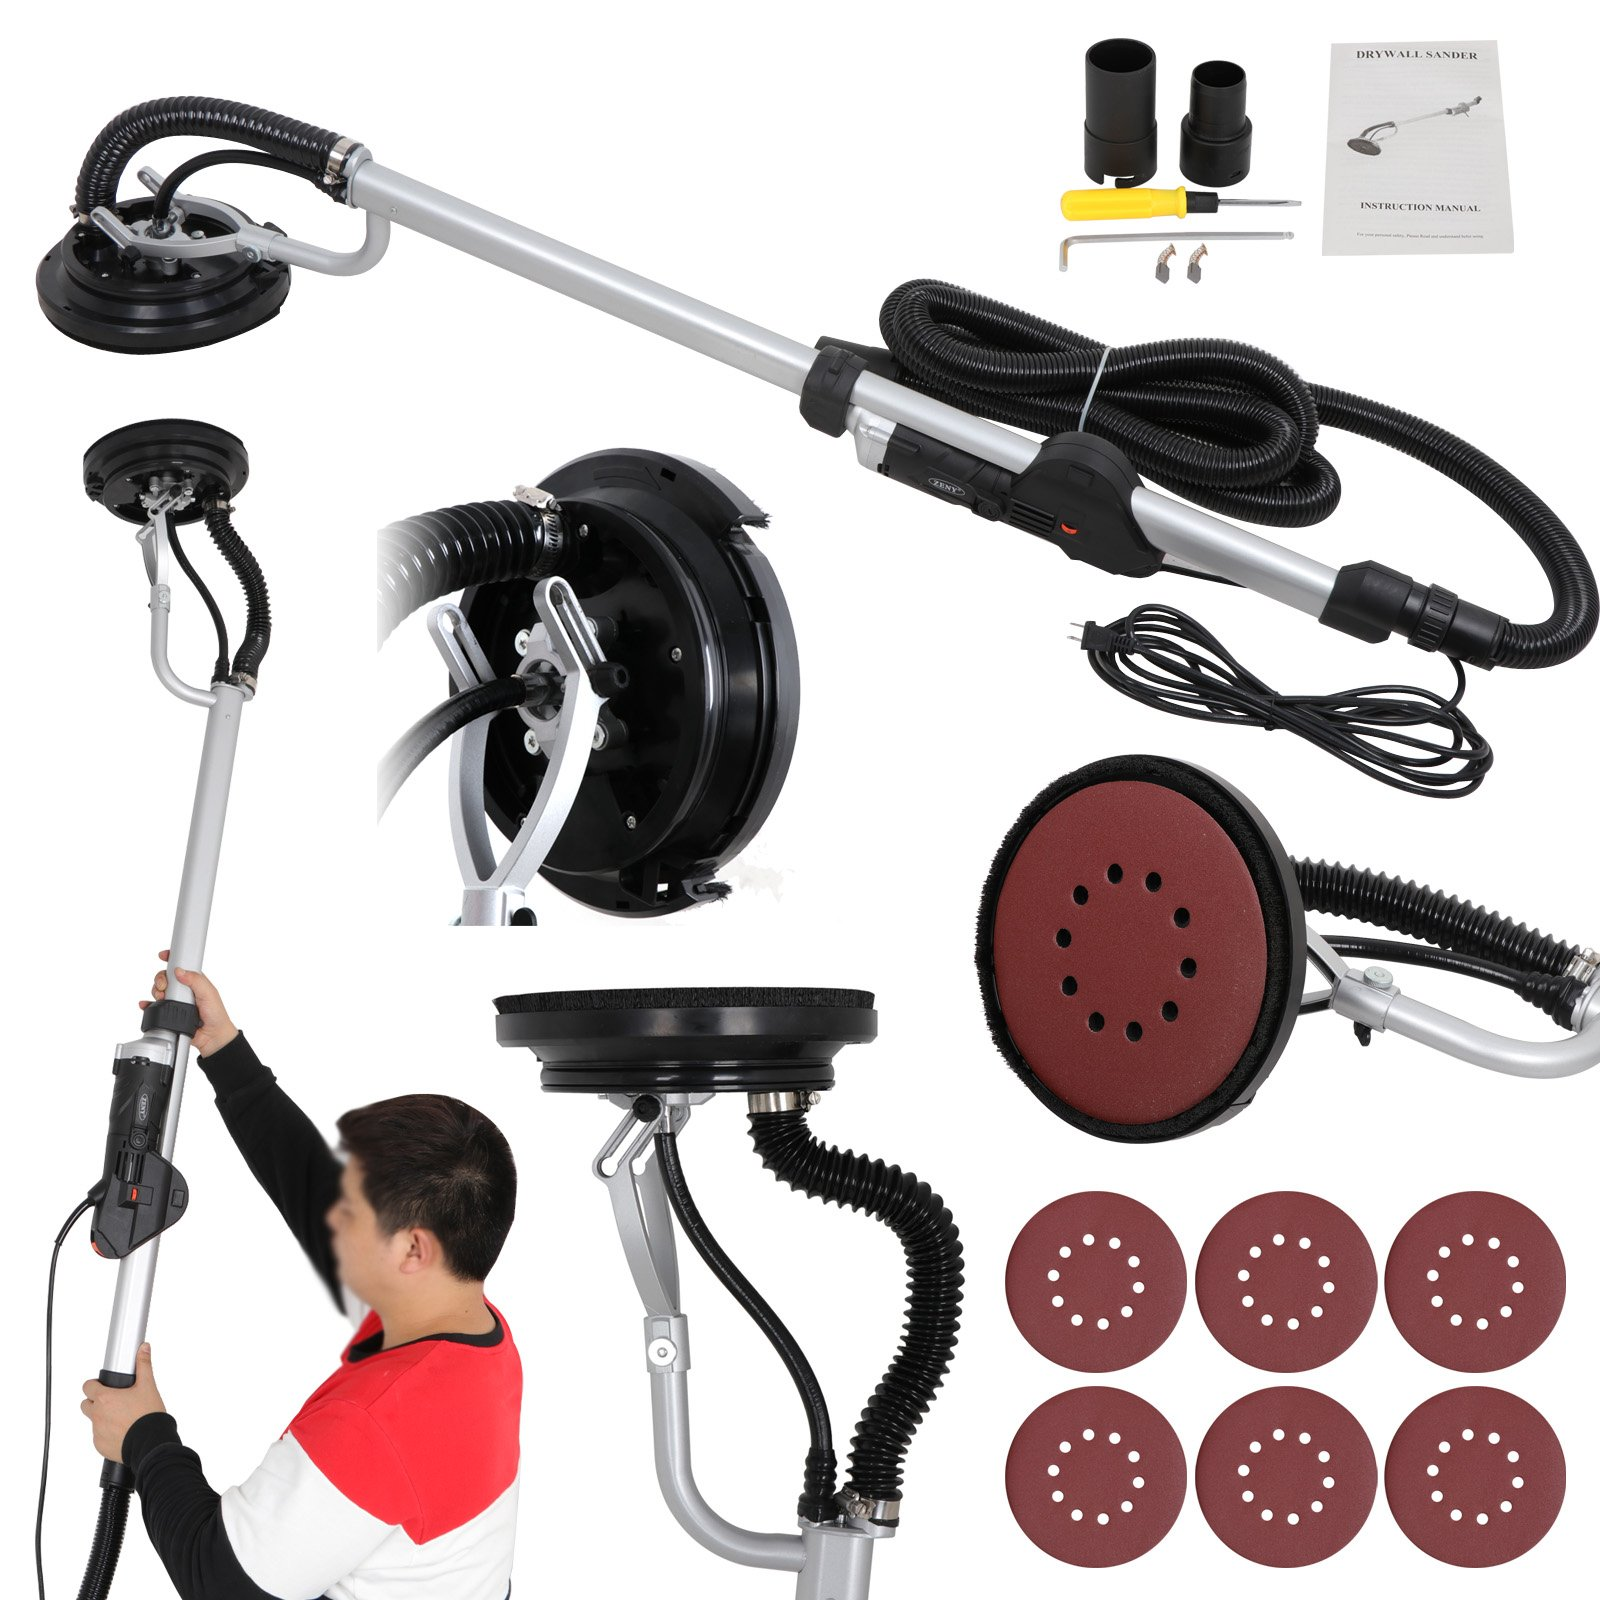 ZENY 800W Electric Drywall Sander Drywall Vacuum Adjustable Variable Speed w/ 6 Sand Pads